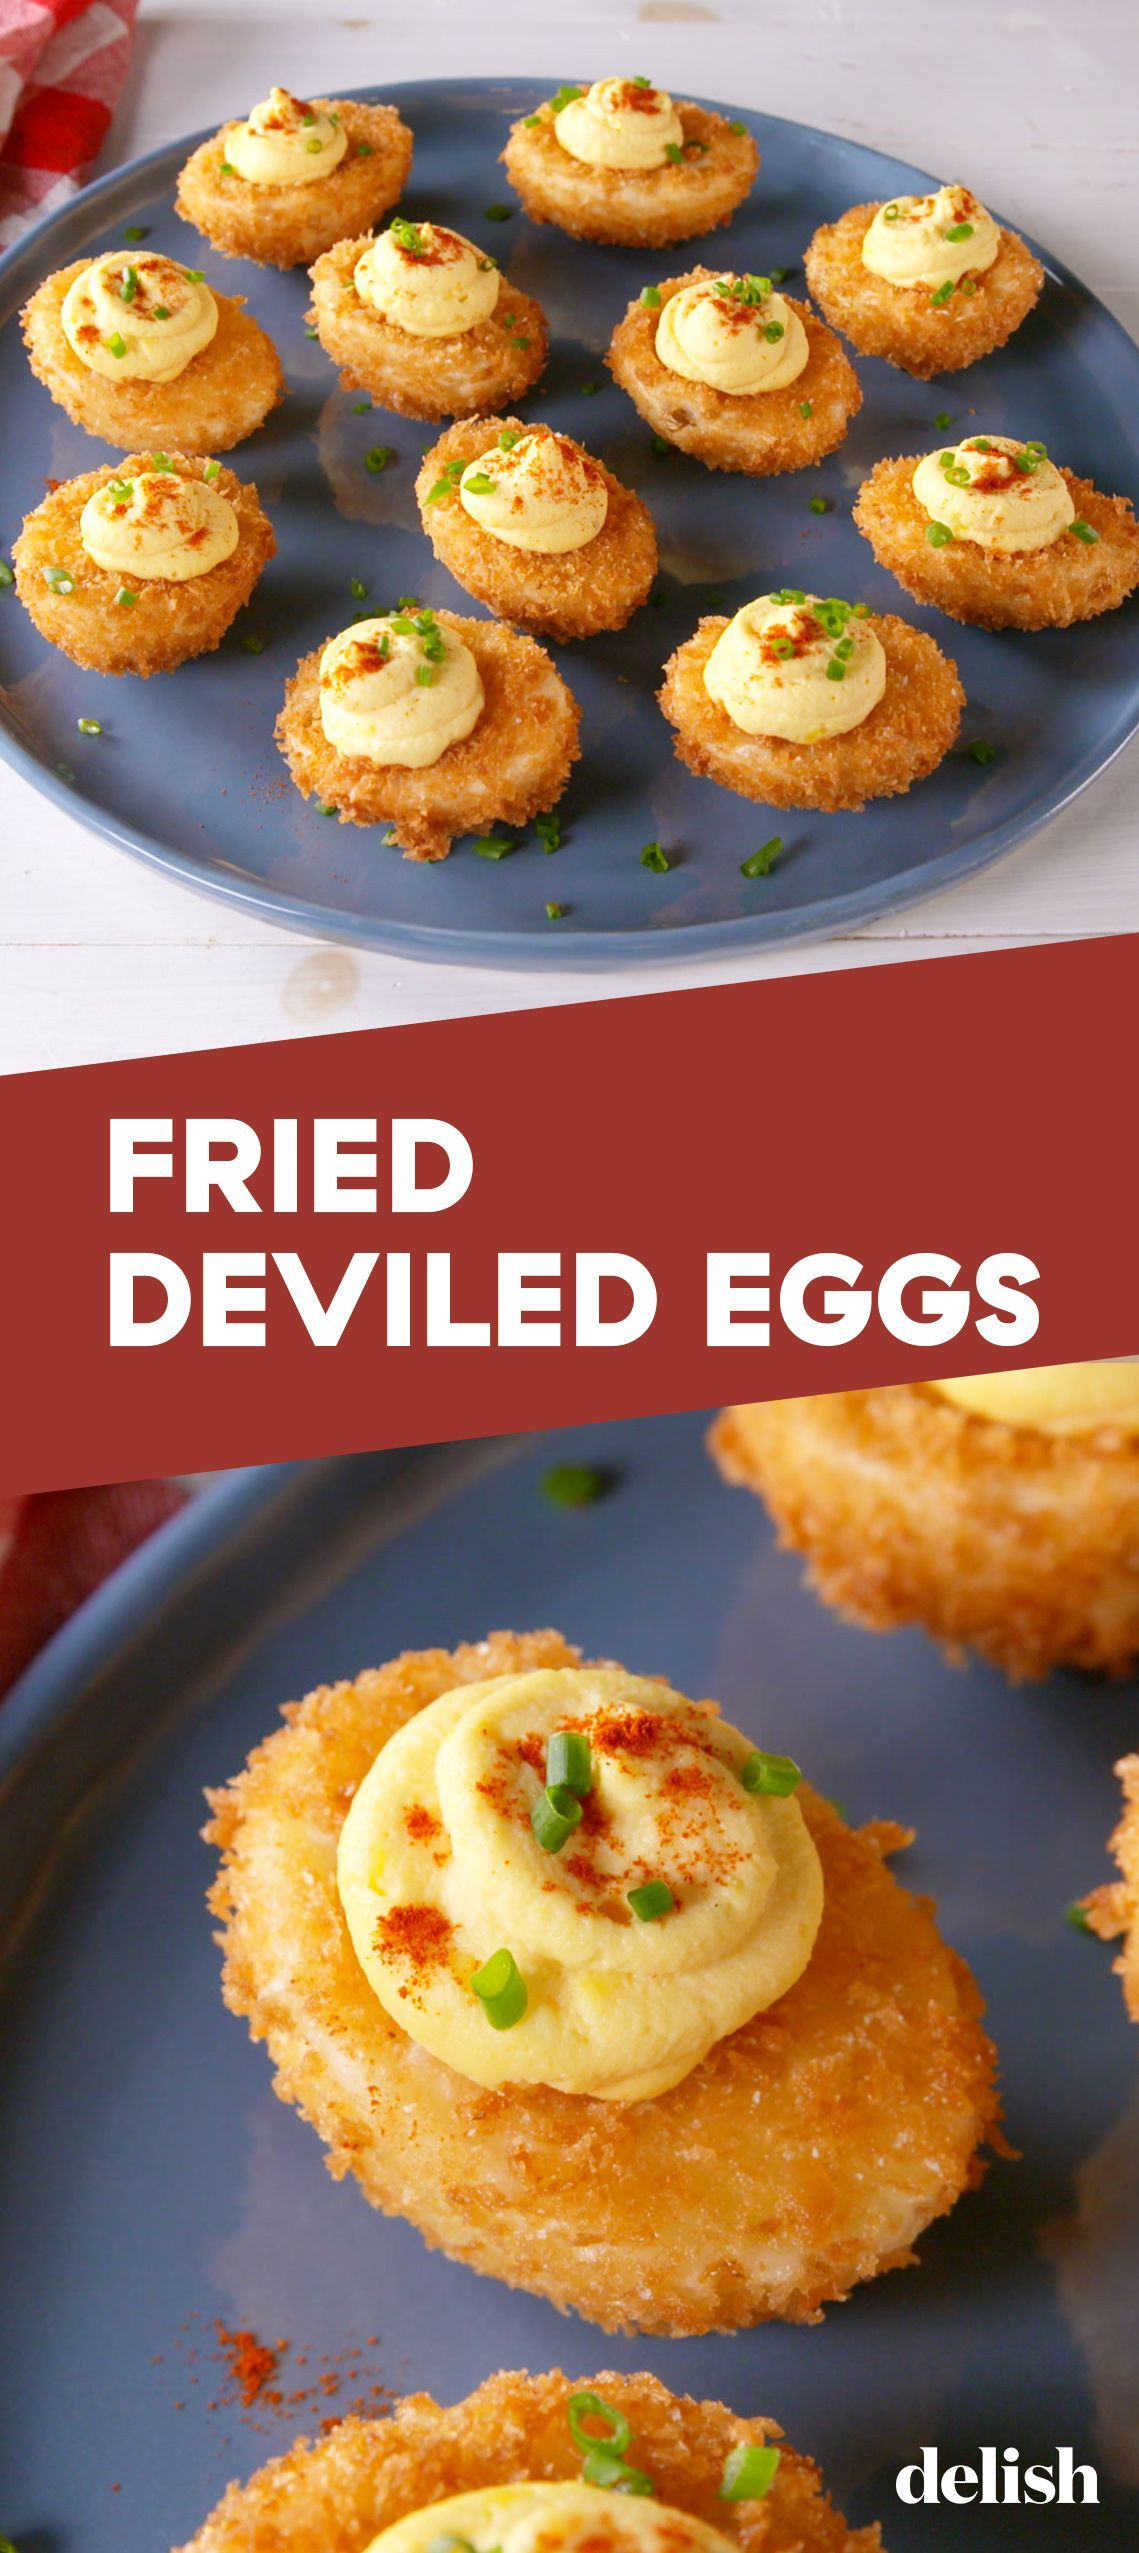 Fried Deviled Eggs: The Appetizer You Never Knew You Needed